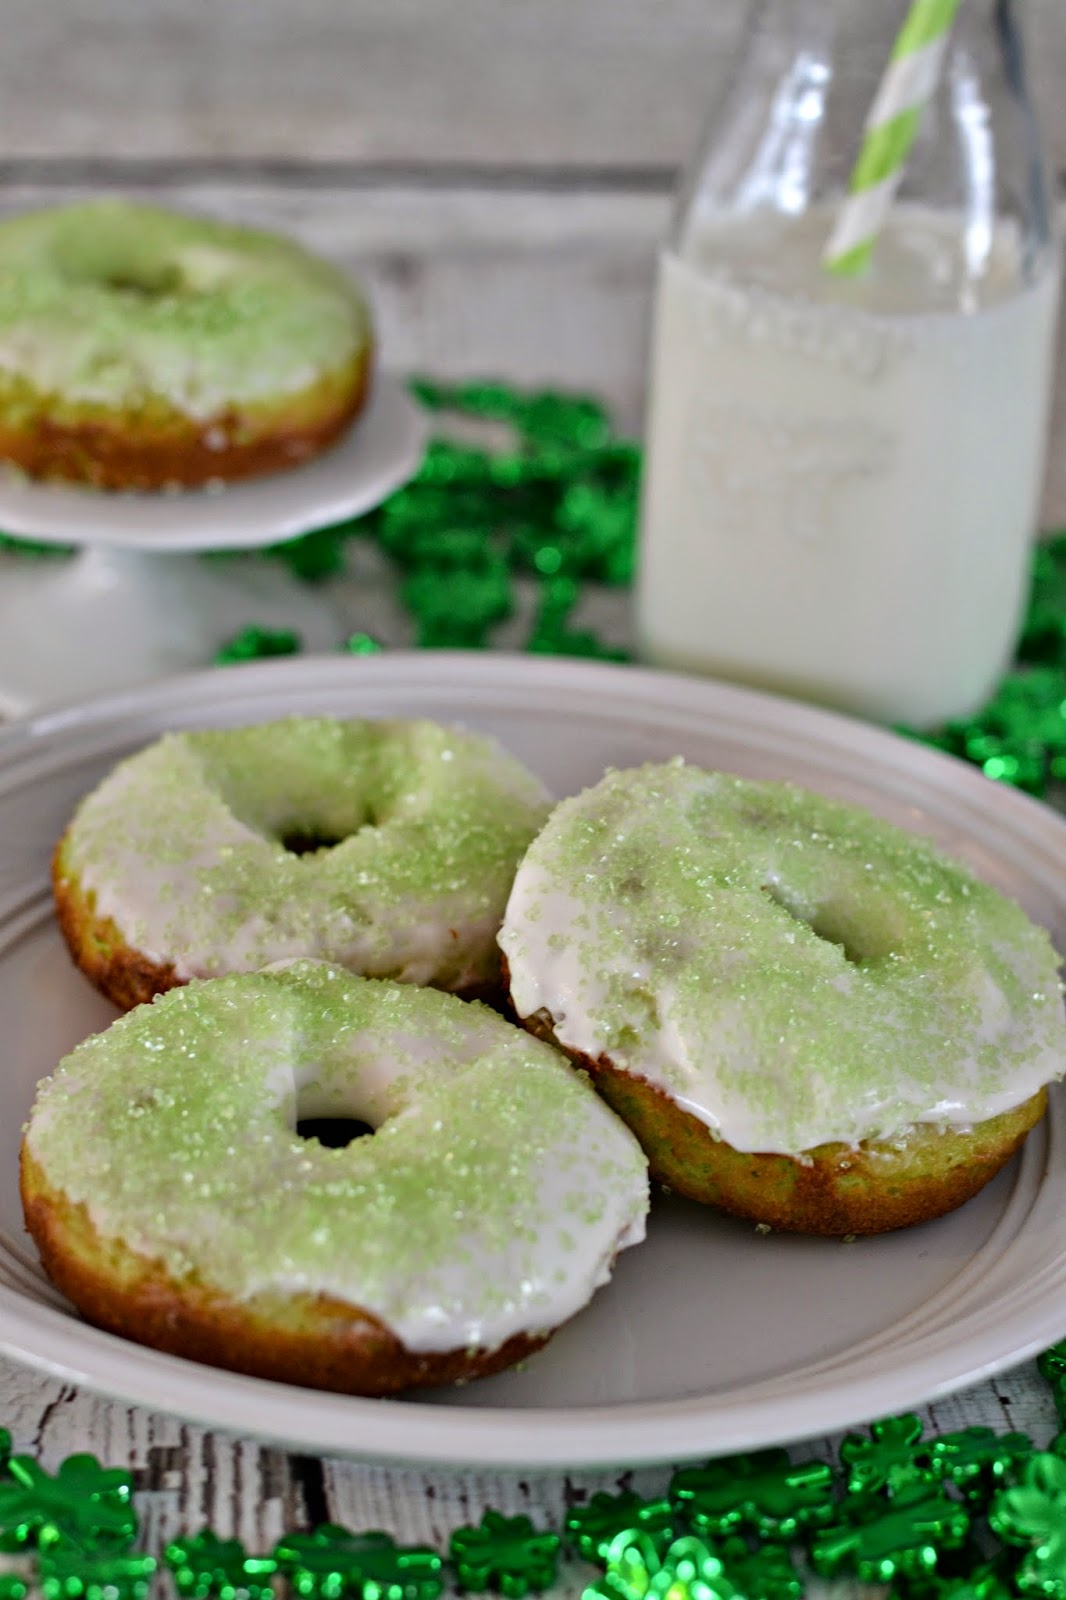 Shamrock Glazed Donuts #Recipe. Easy Donut Recipe.  St. Patrick's Day treats.  St. Patrick's Day desserts.  St. Patrick's Day donuts.  Shamrock Donut recipe.  St. Patrick's Day Recipes.